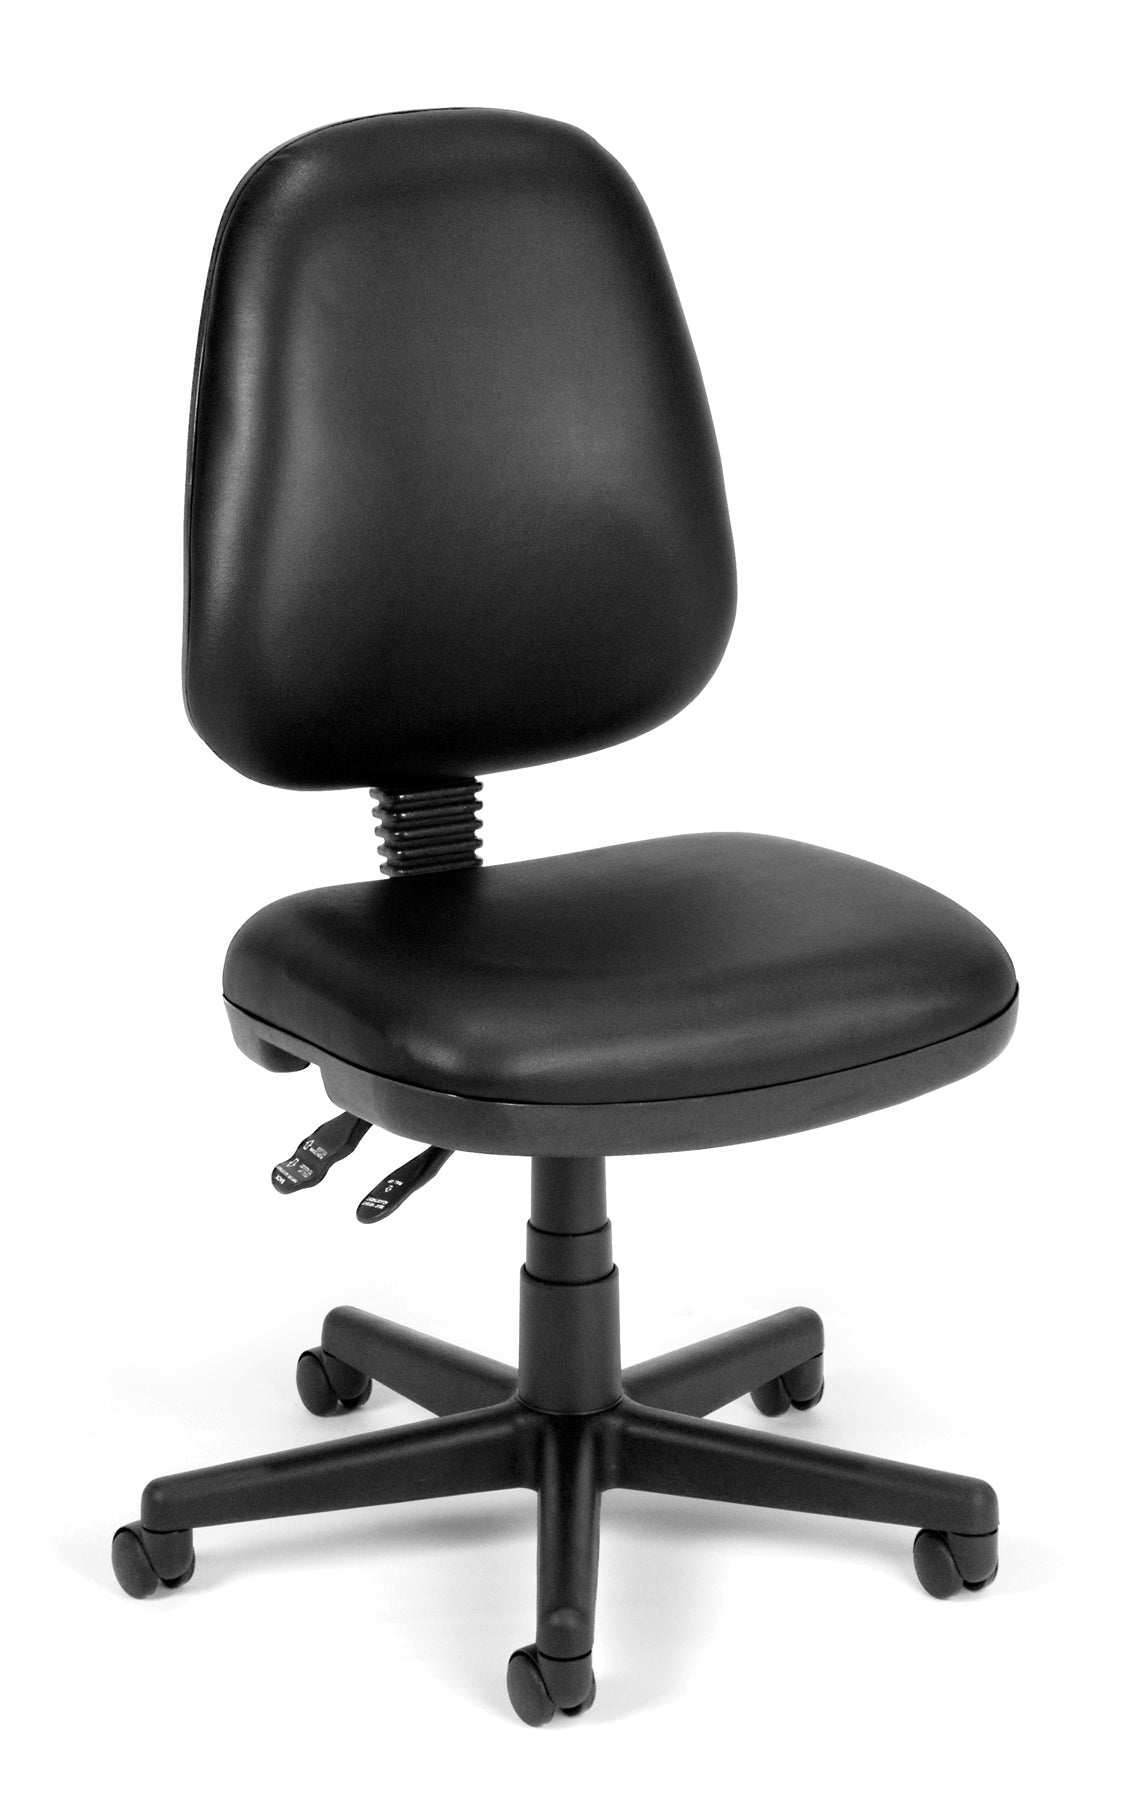 Ofminc Model 119-VAM Straton Series Armless Vinyl Swivel Task Chair